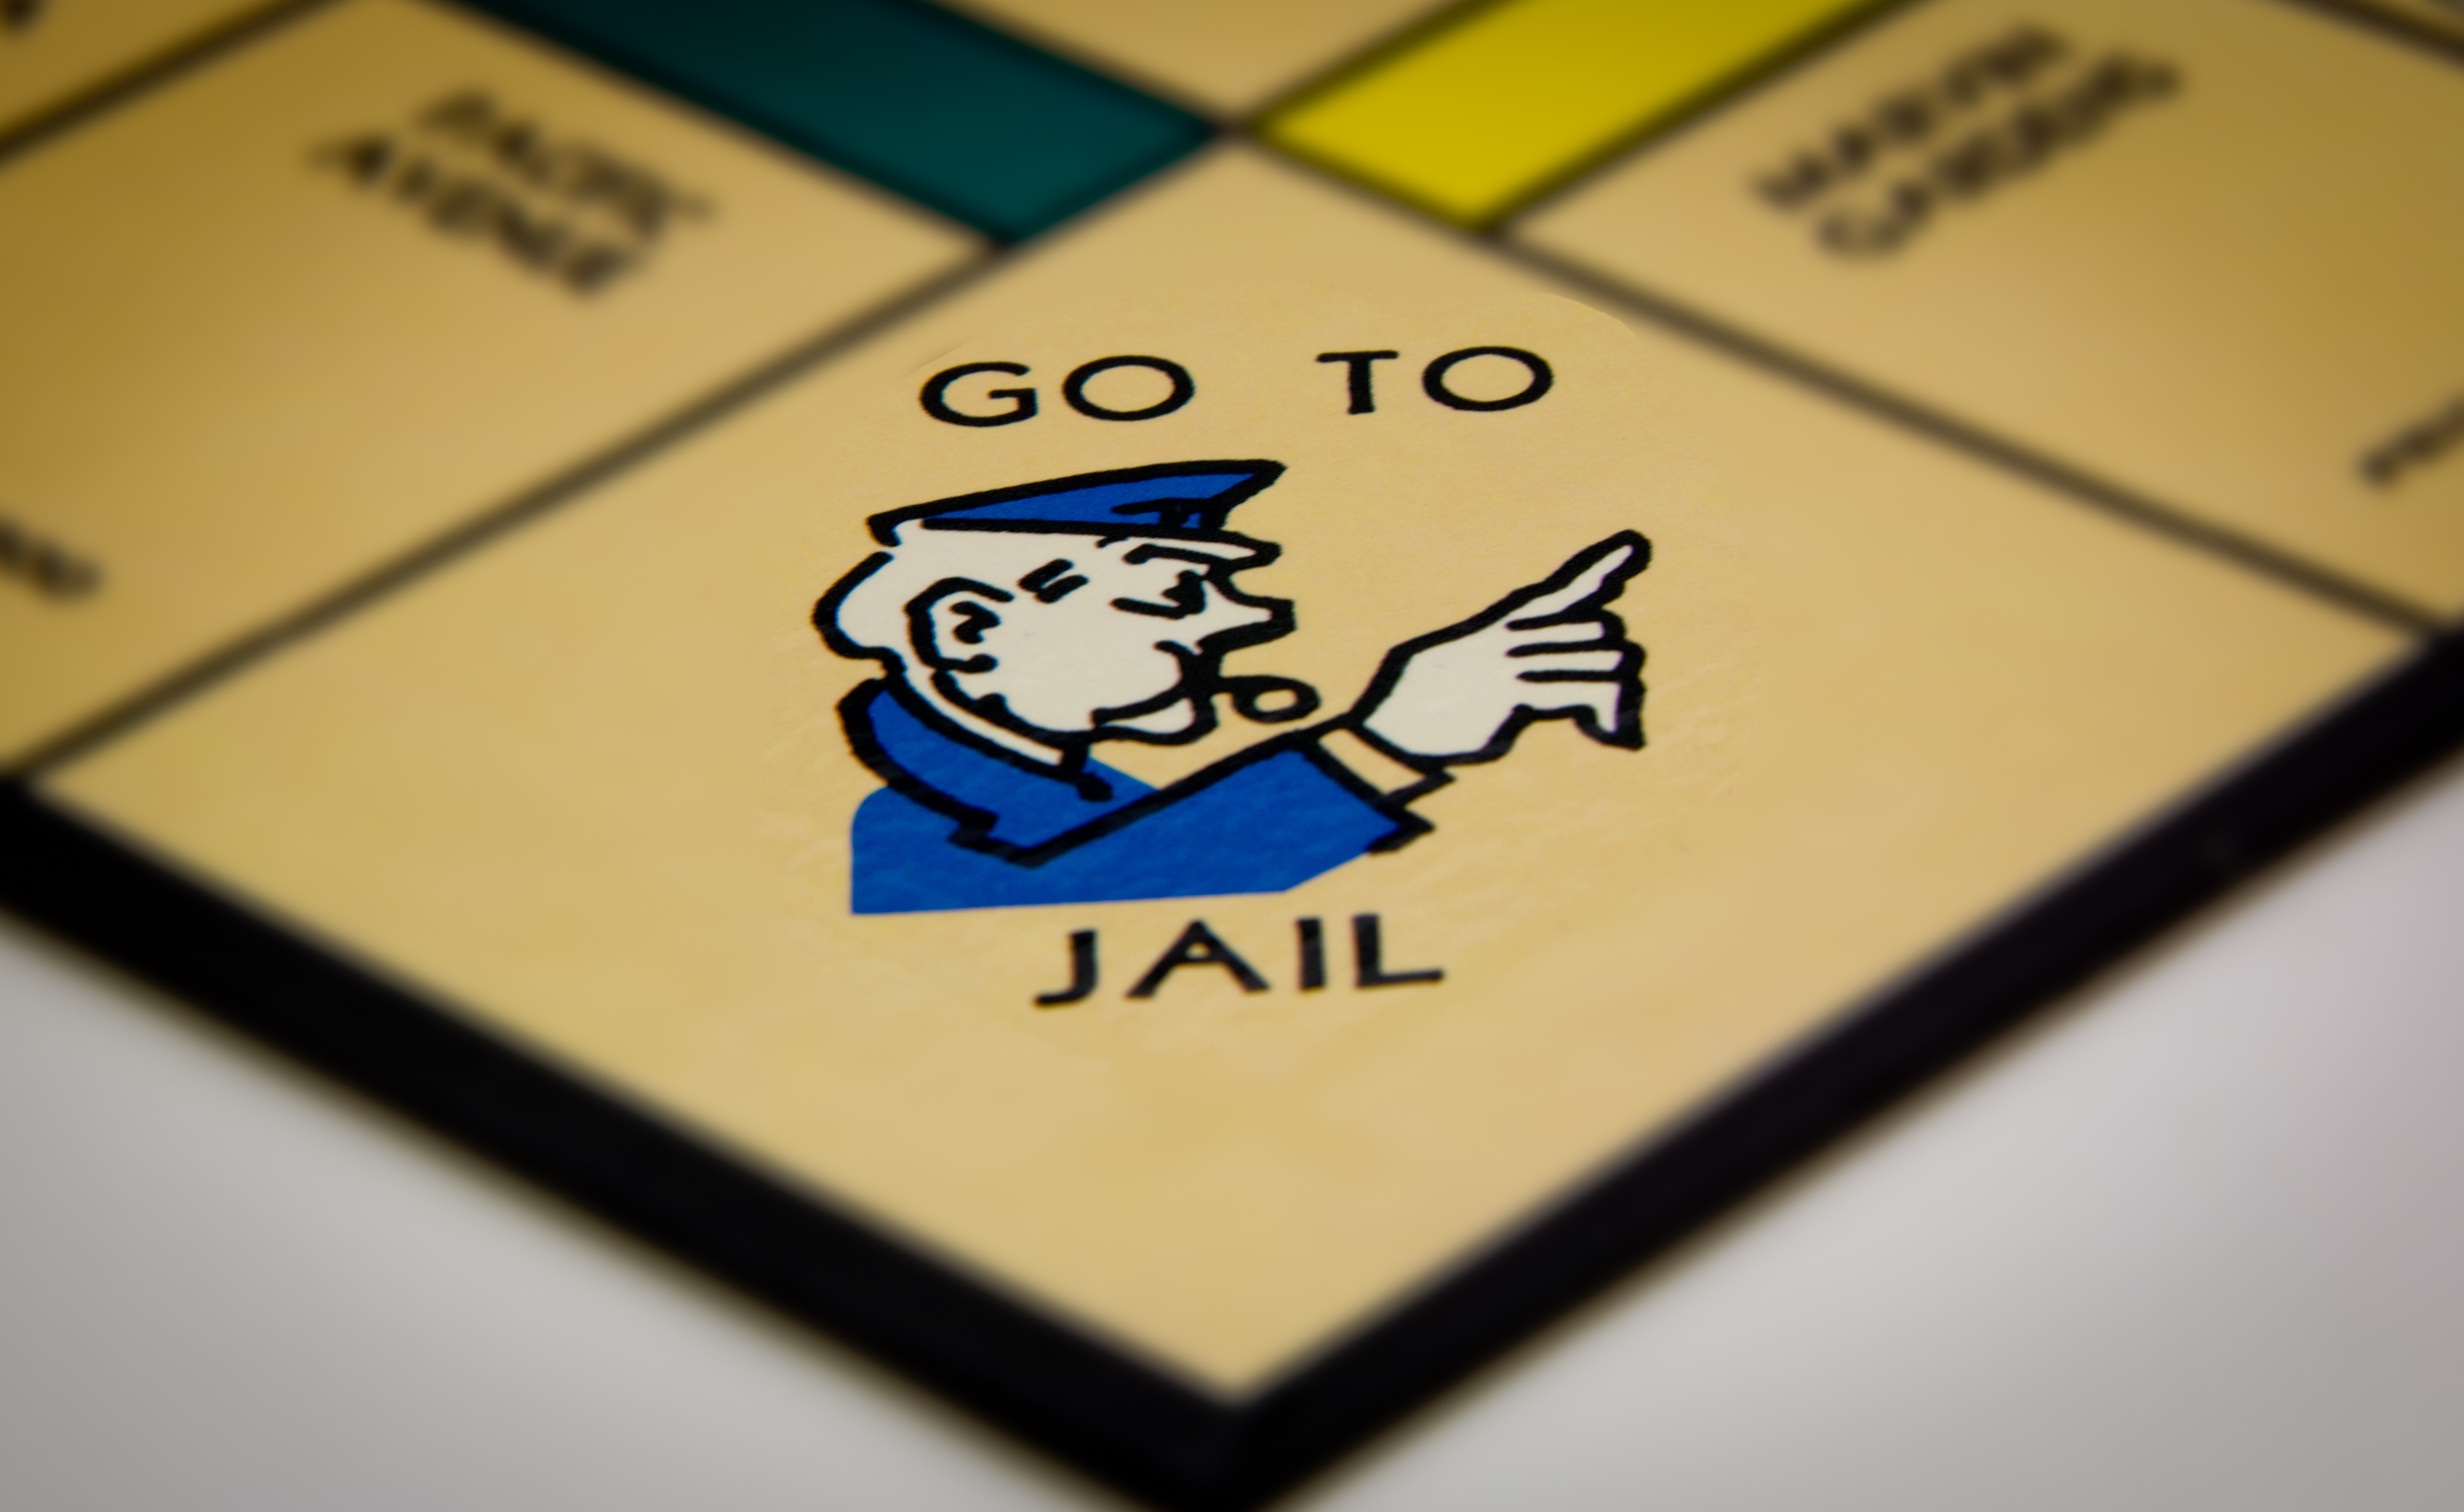 Go Directly To Jail (Do not pass go, do not collect $200)